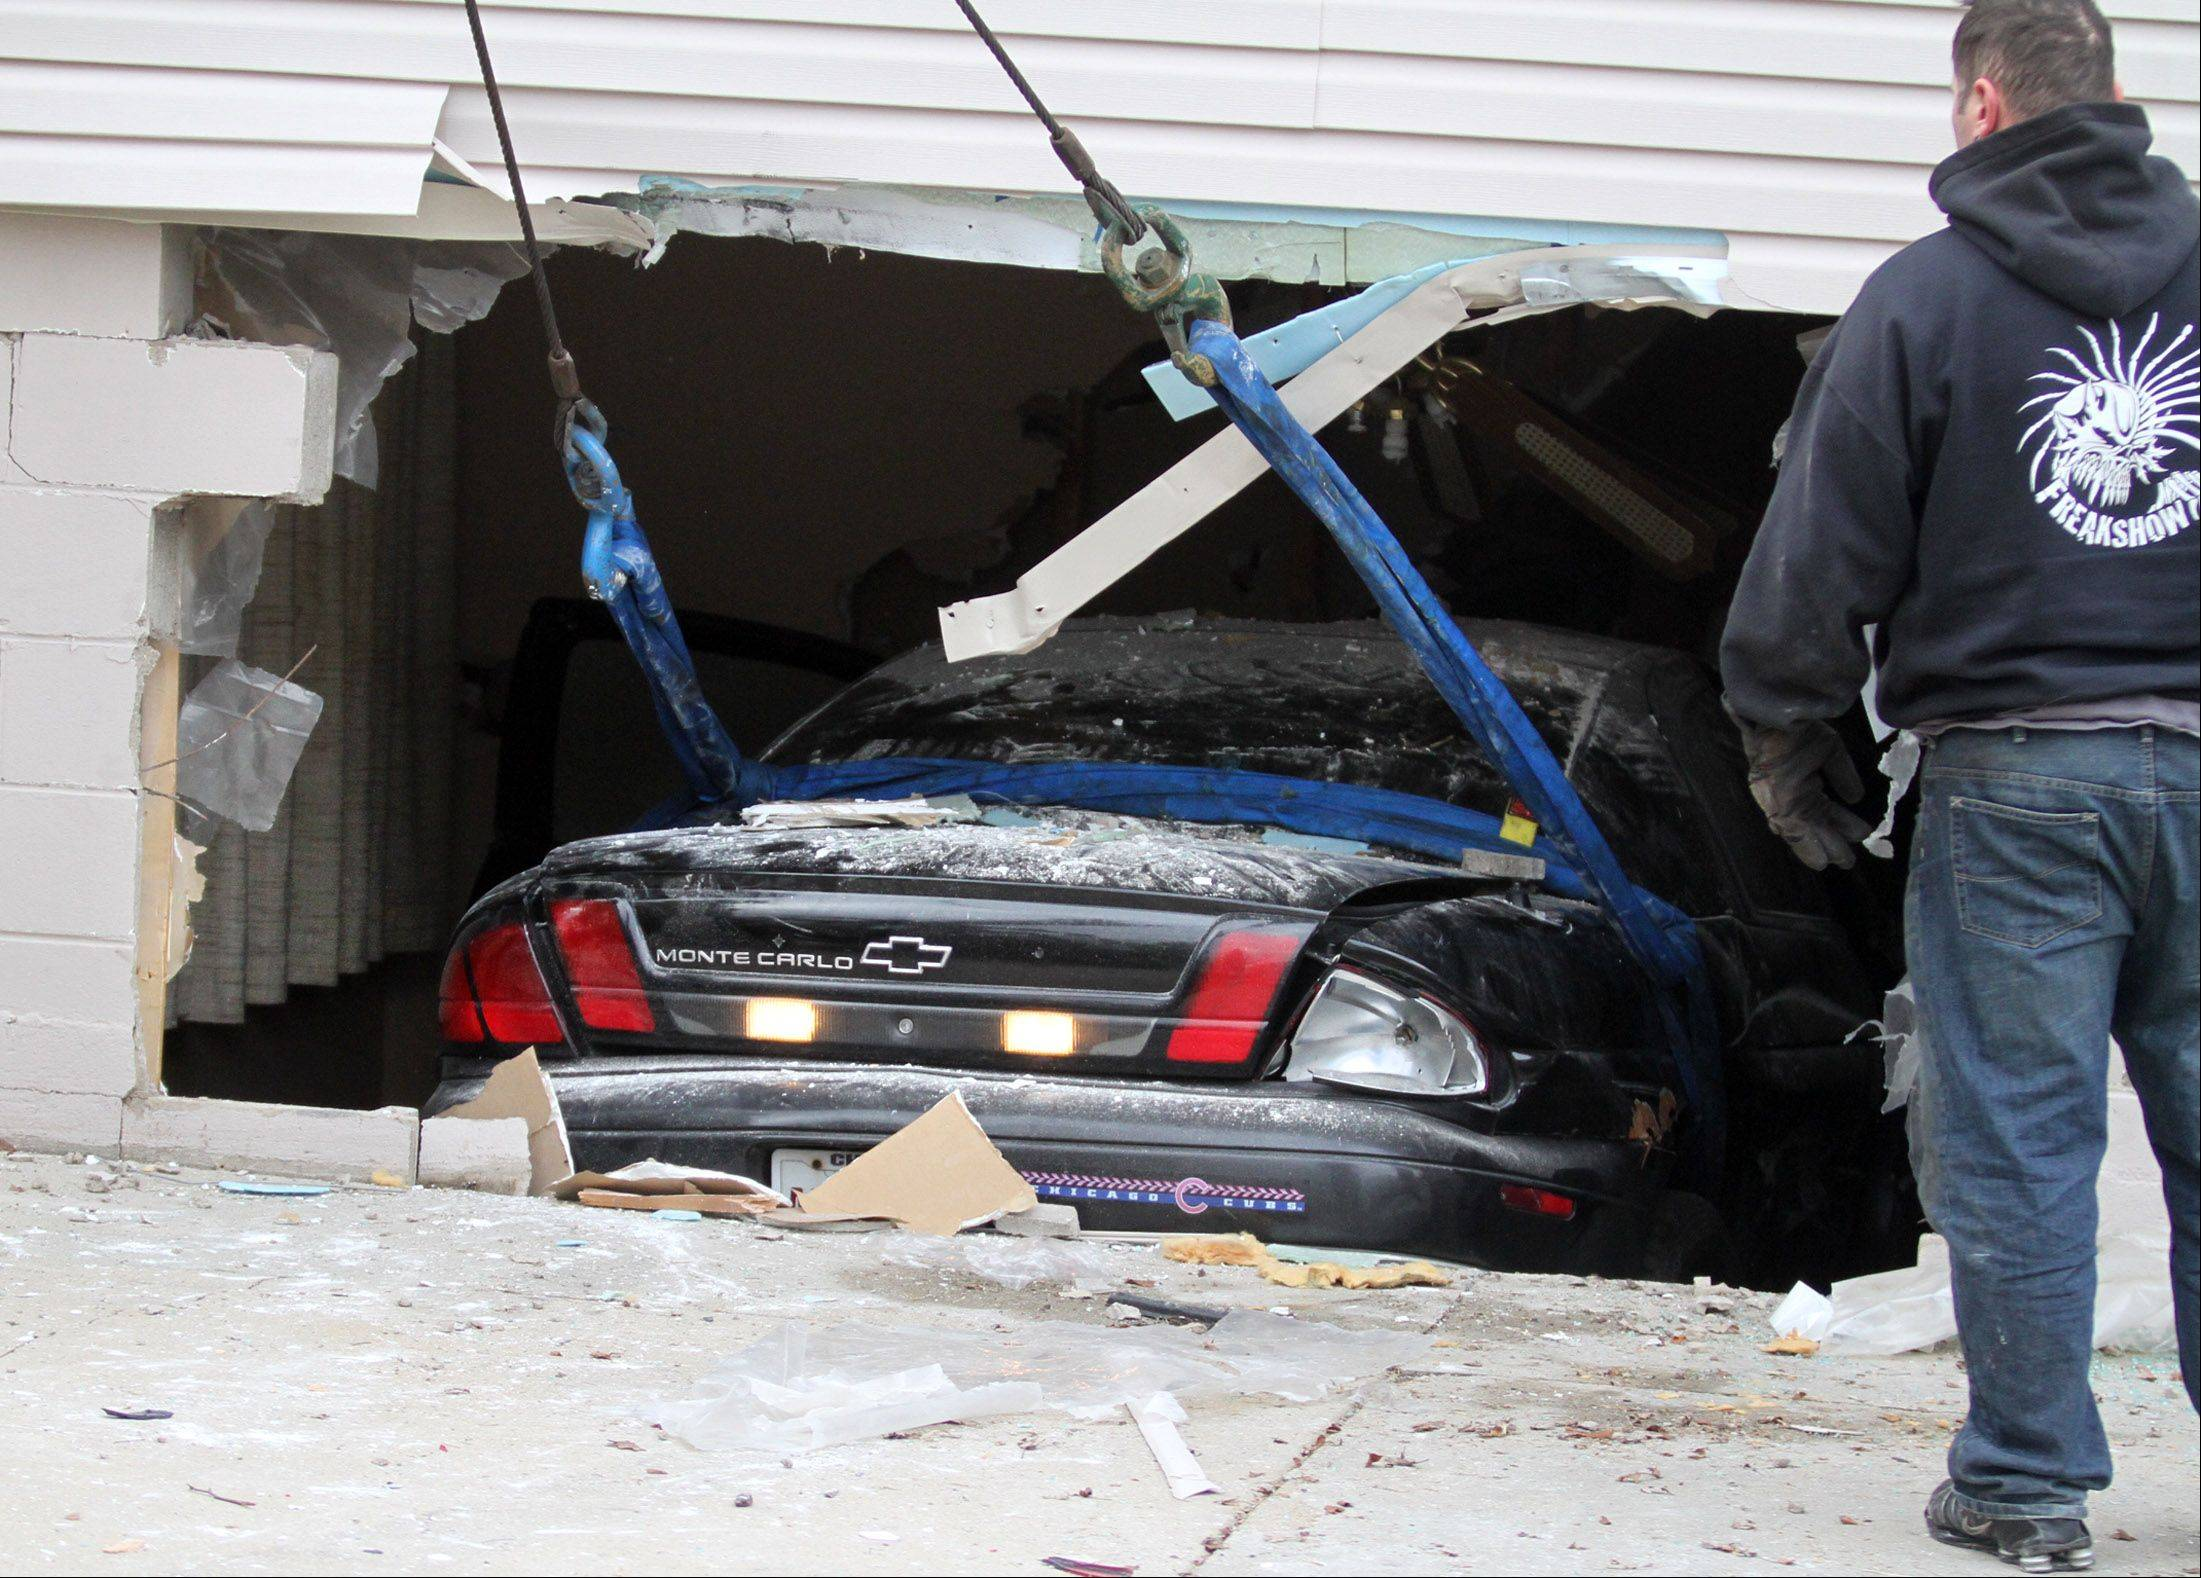 Geraldine Gibb had left her basement moments before this Chevy Monte Carlo, driven by an unidentified male, crashed through the wall.